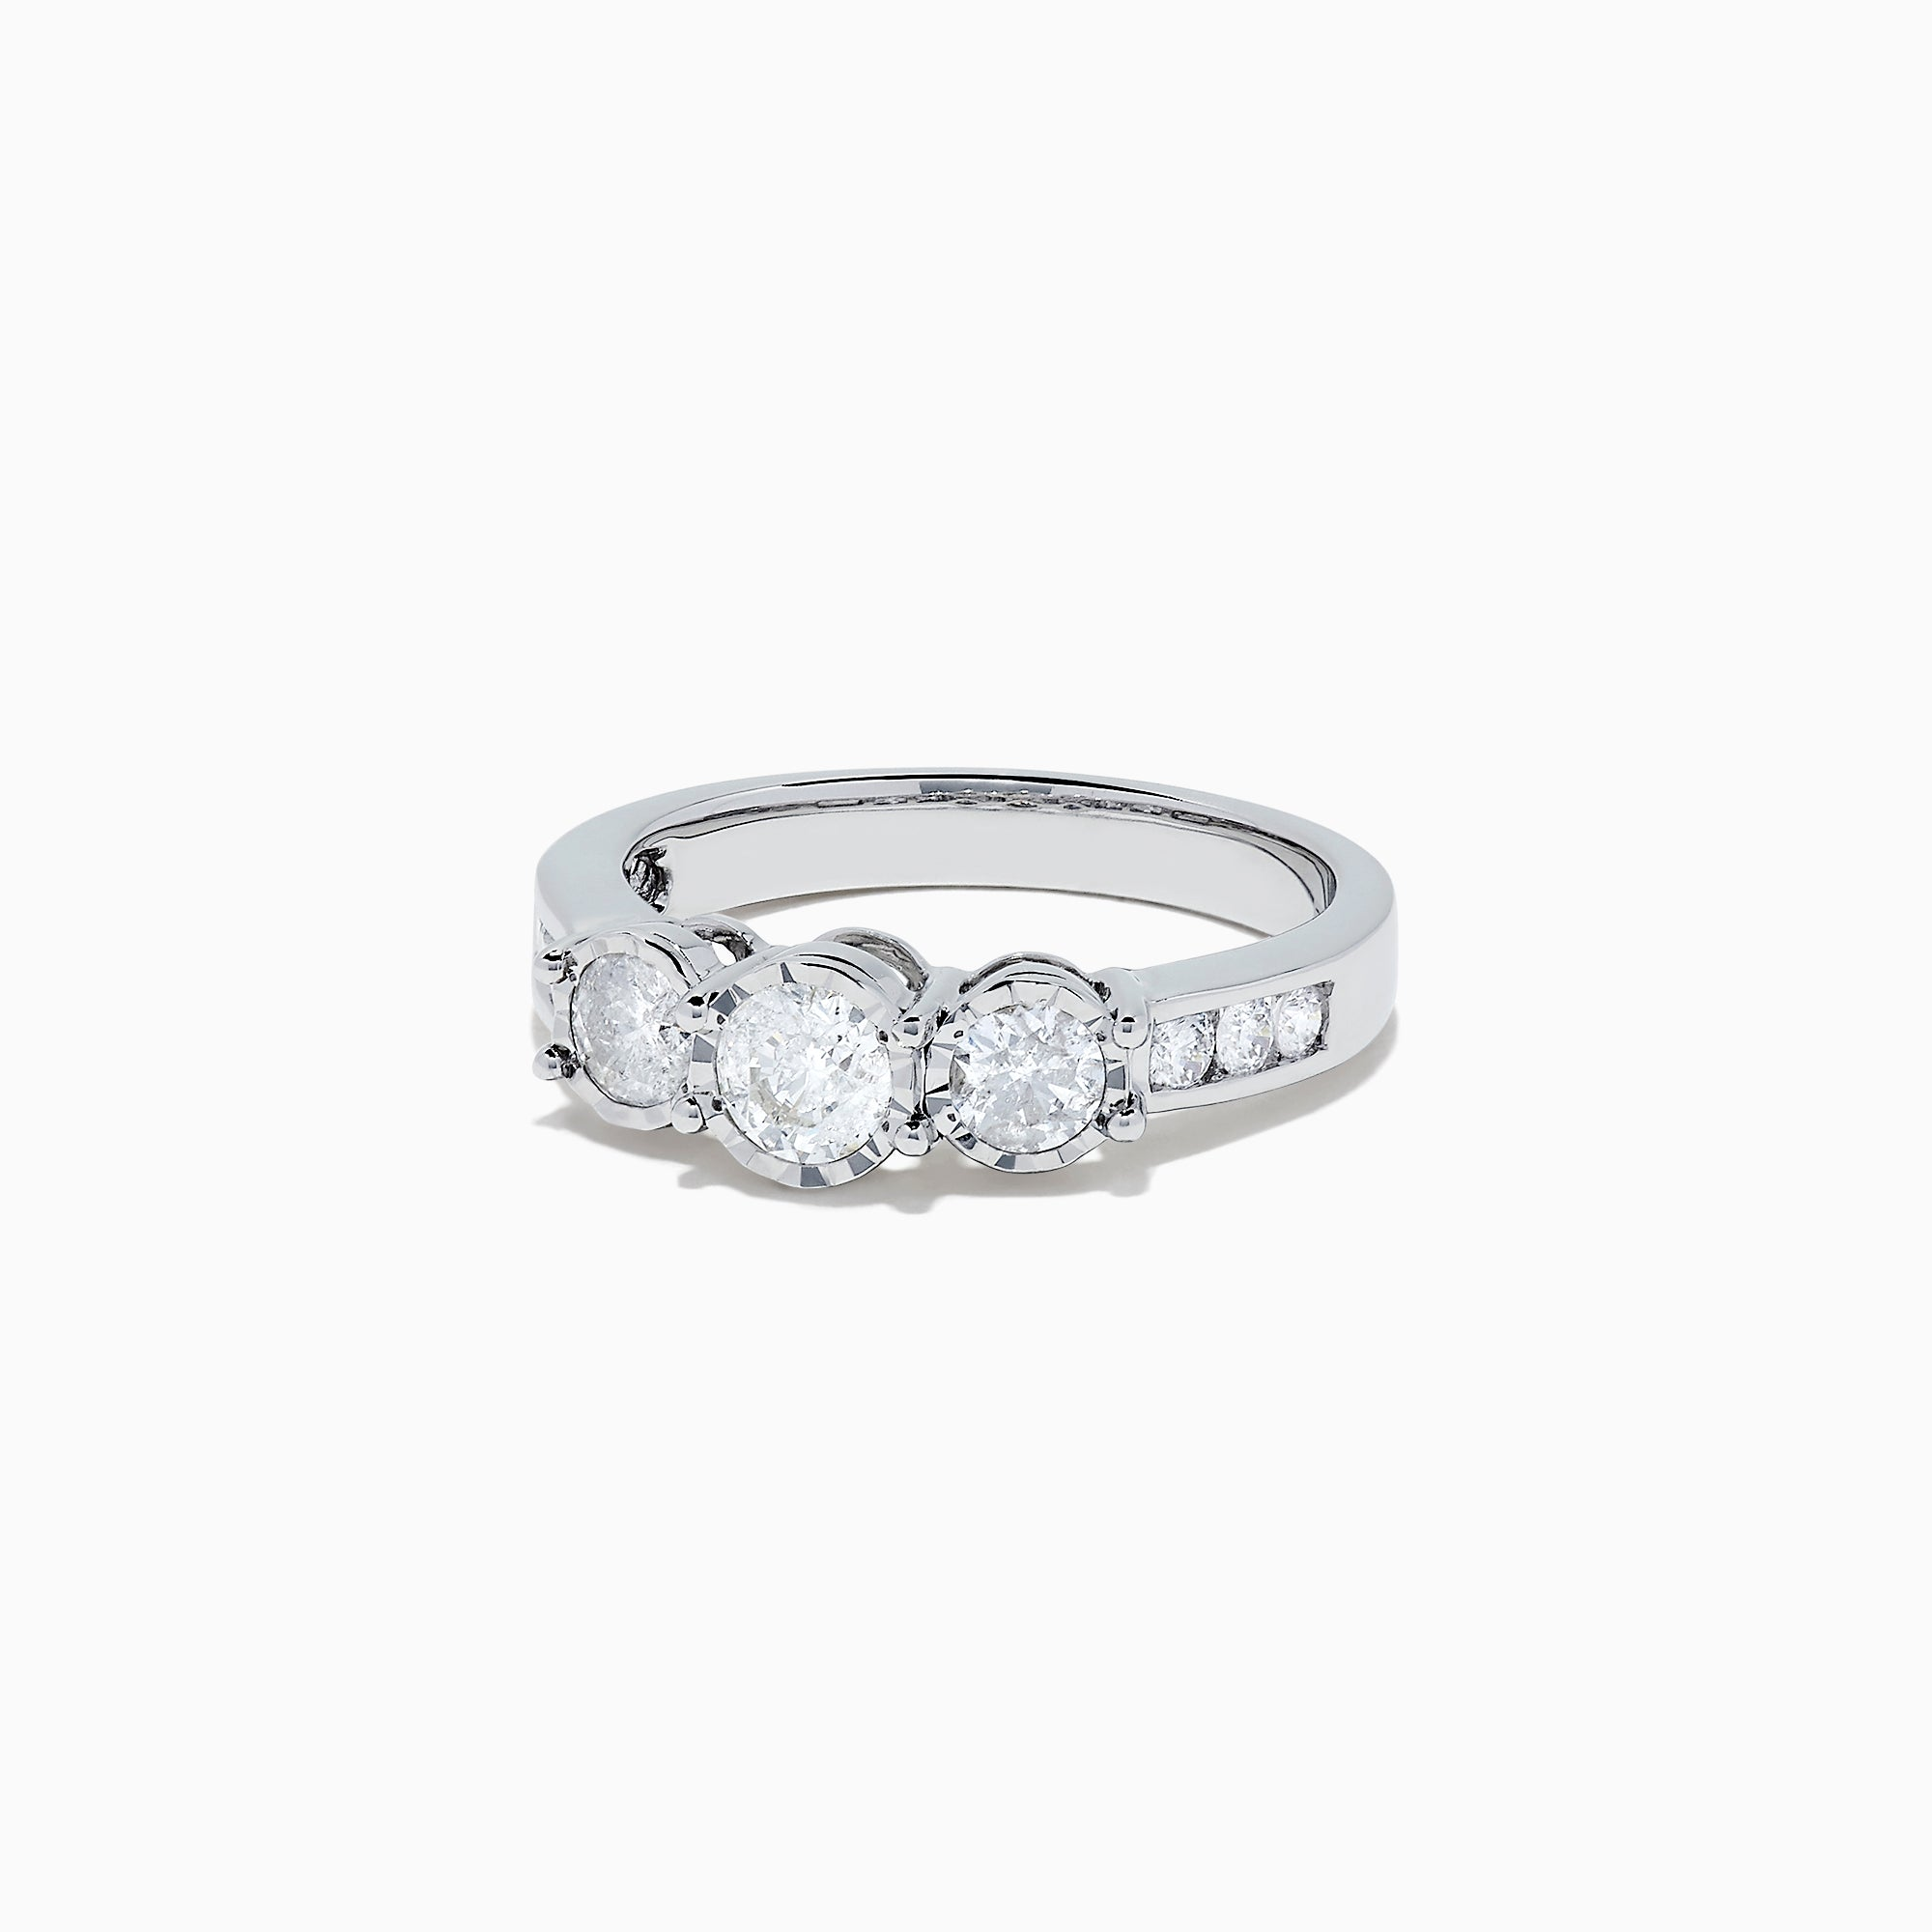 Effy Bridal 14K White Gold 3-Stone Diamond Ring, 0.95 TCW